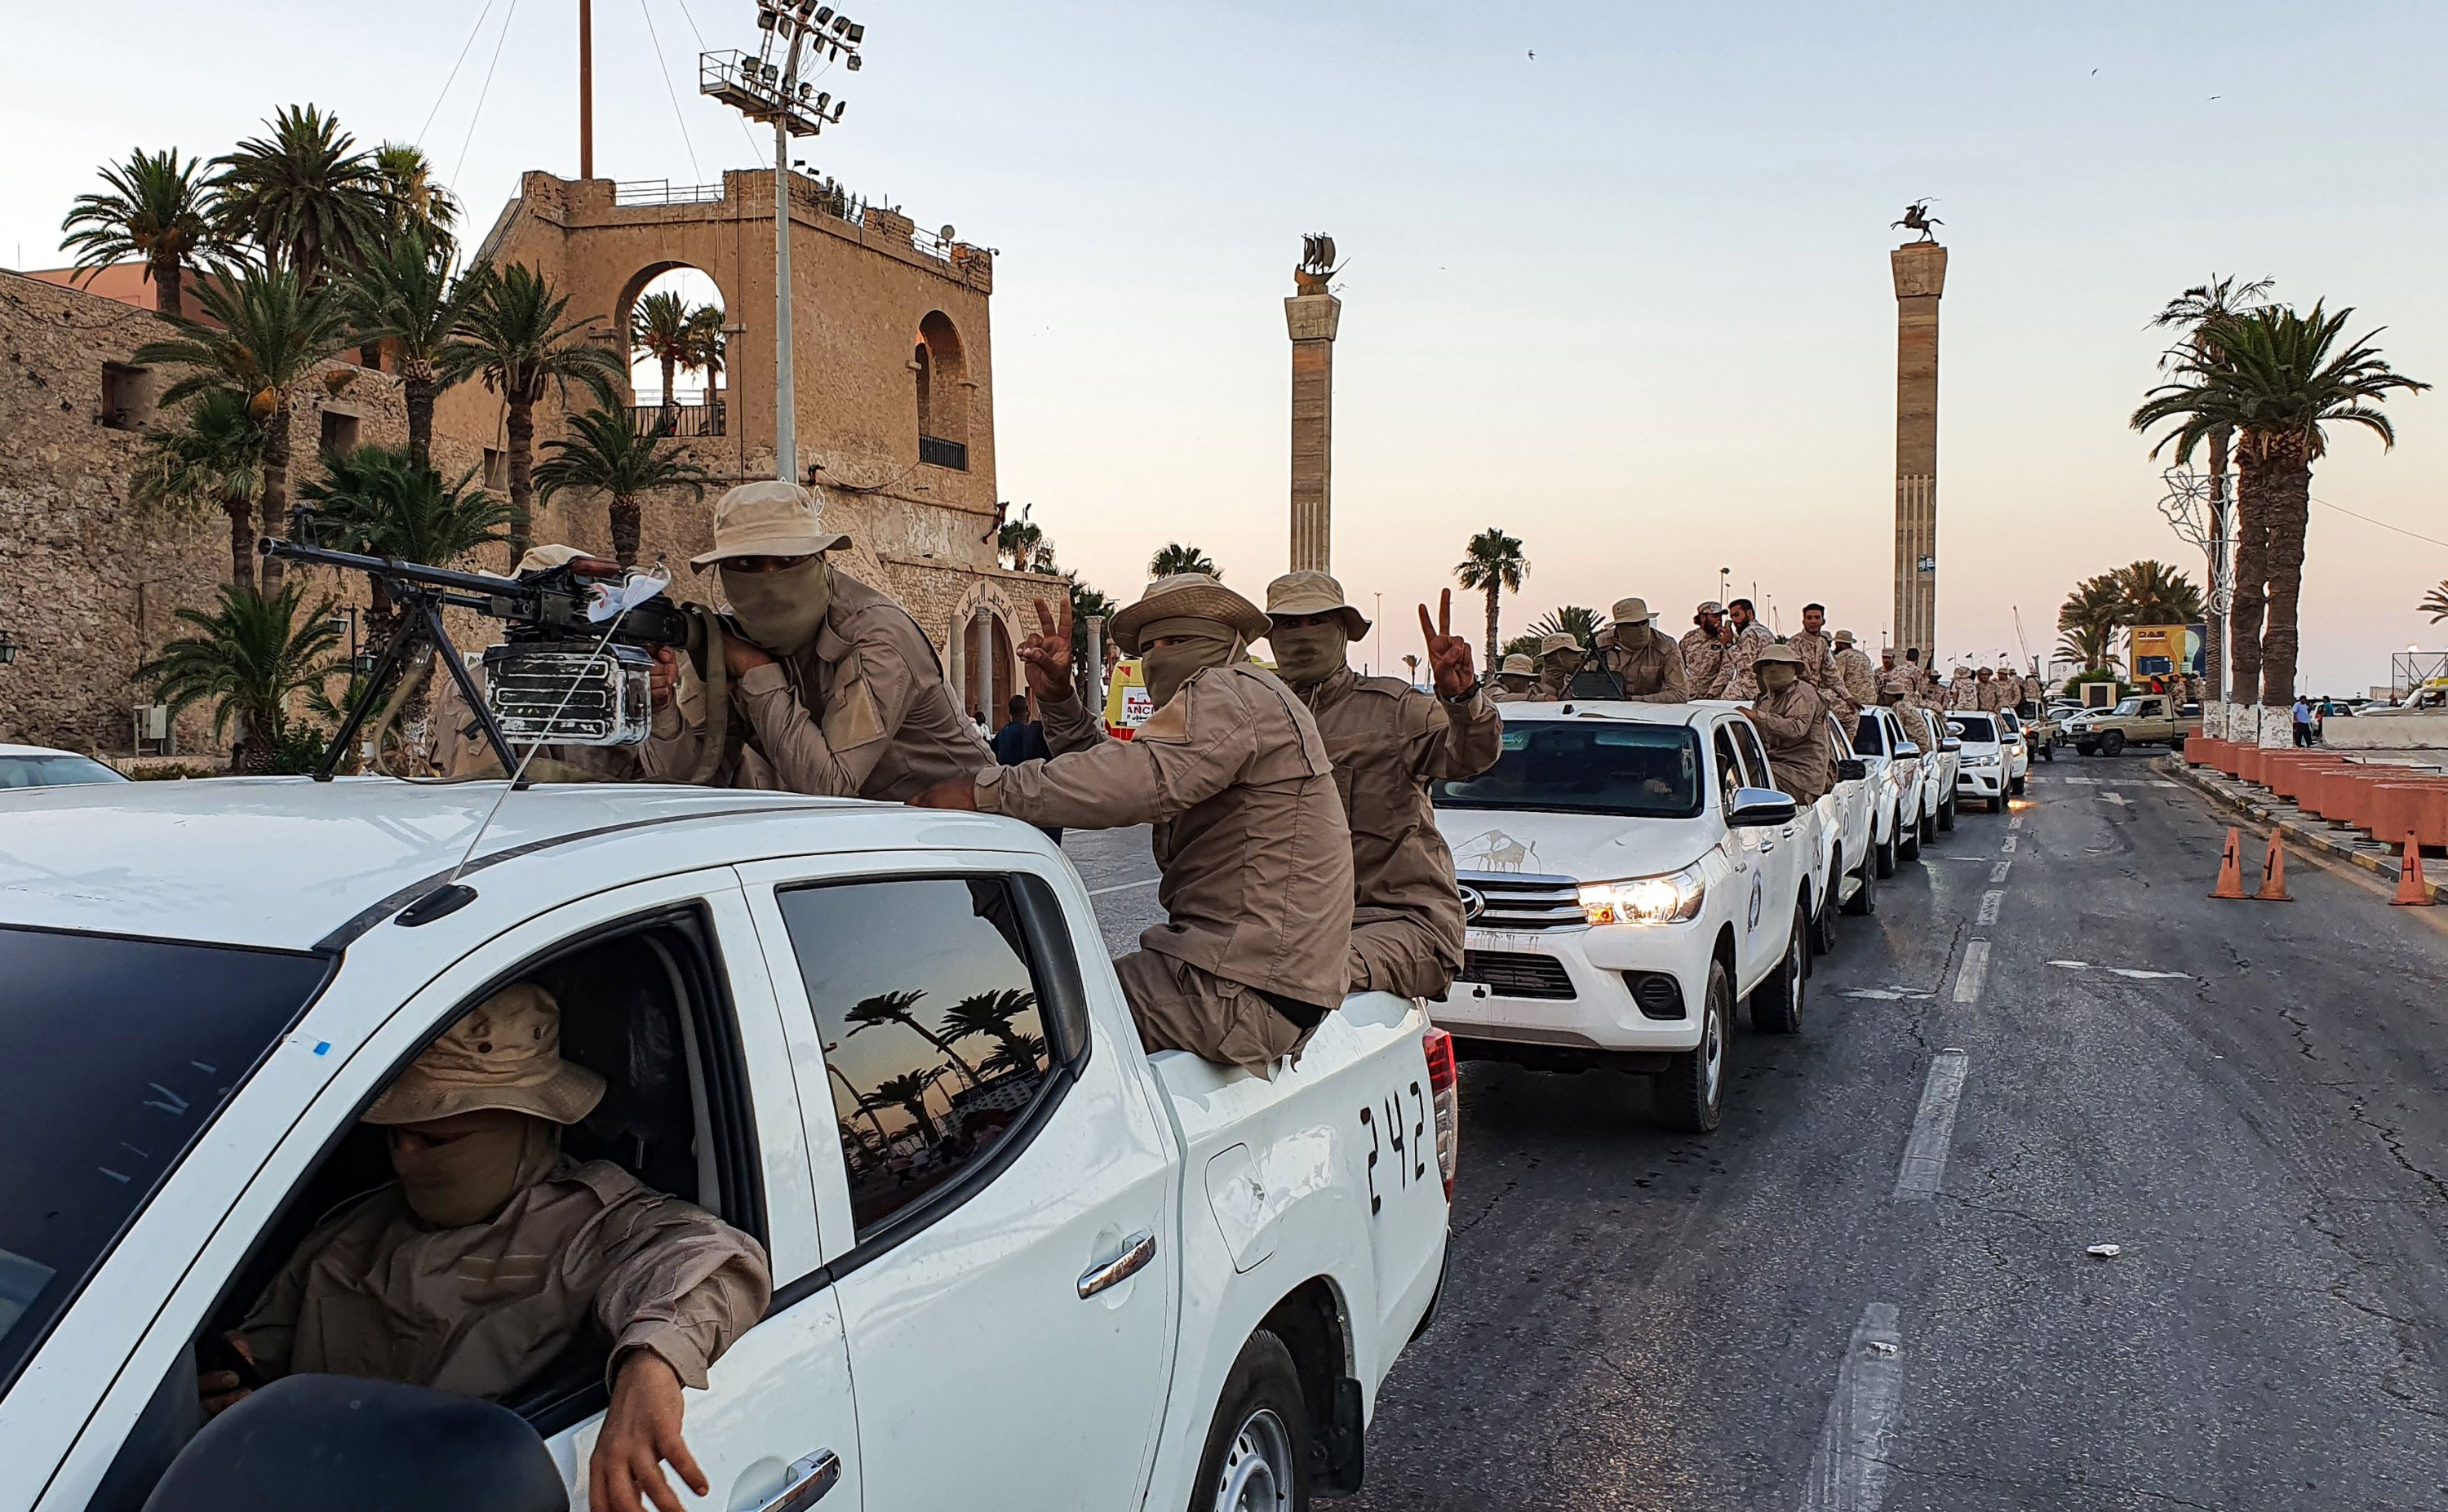 Vehicles of the 'Tripoli Brigade', a group loyal to the UN-recognised Government of National Accord (GNA), parade through the Martyrs' Square at the centre of the GNA-held Libyan capital Tripoli, July 10, 2020. (AFP)